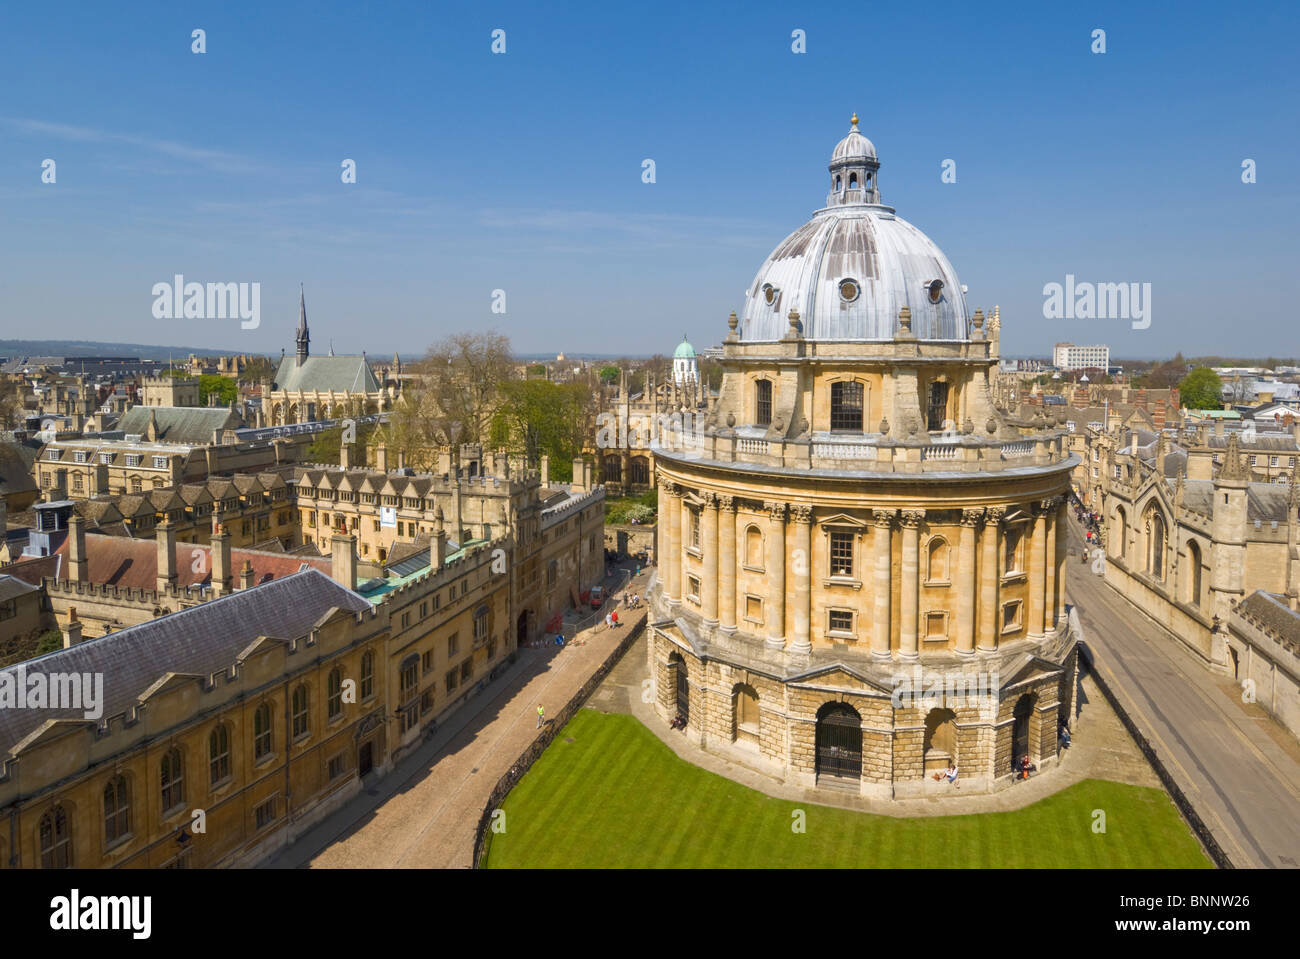 Radcliffe Camera walls of Brasenose College and rooftops of the University city of Oxford, Oxfordshire, England, - Stock Image